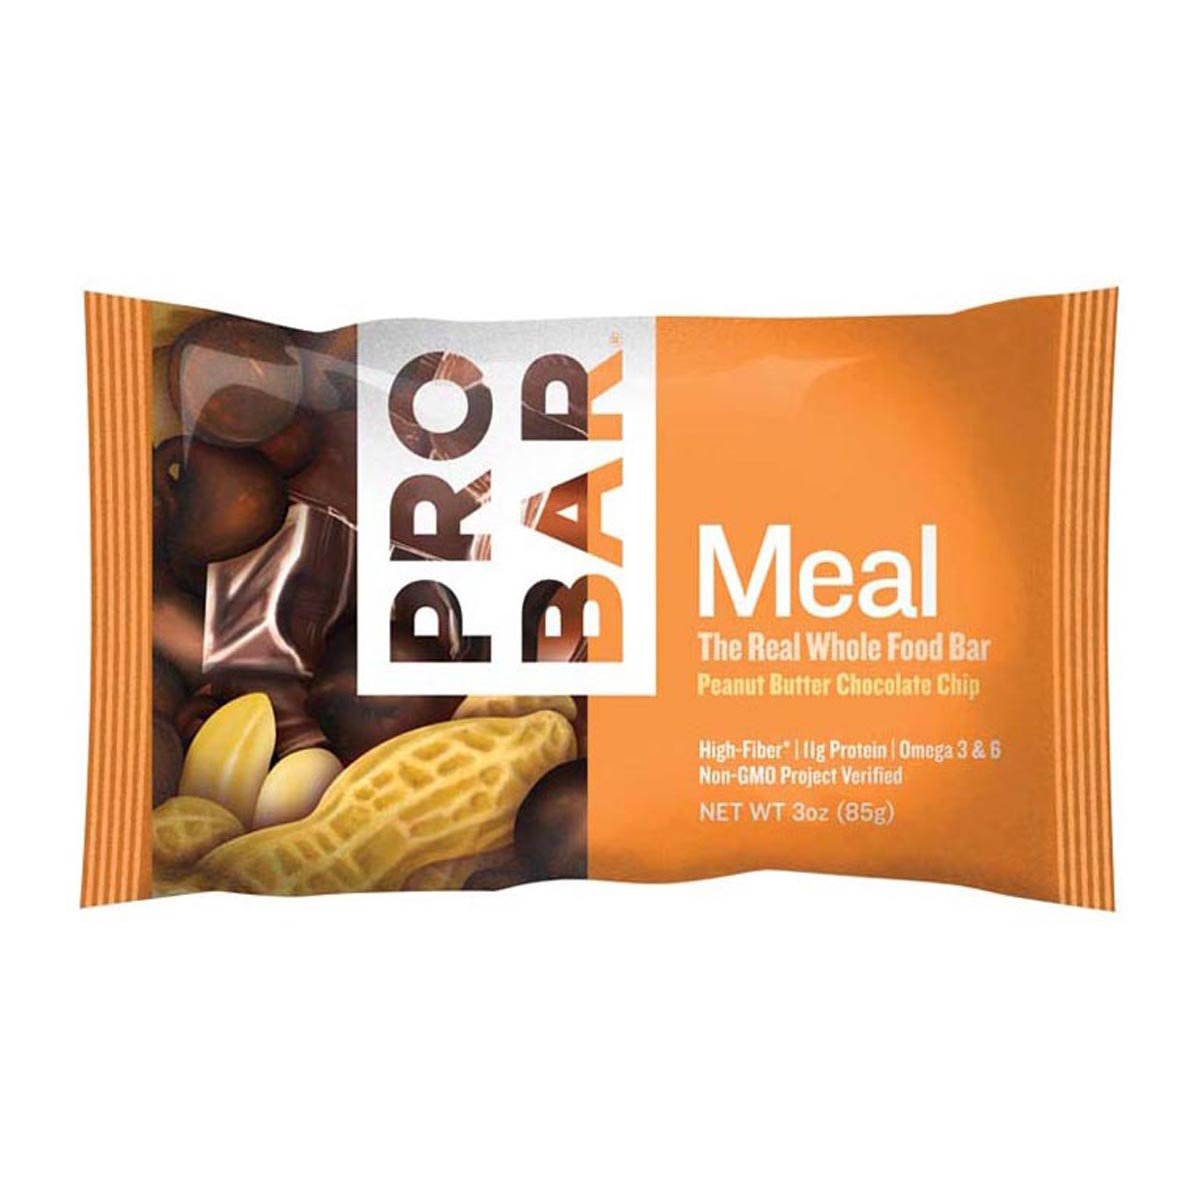 PROBAR - Meal Bar - Peanut Butter Chocolate Chip - Gluten Free, Non-GMO Project Verified, Plant-Based Organic Whole Food Ingredients, 10g Protein, 6g Fiber - Pack of 12 Bars